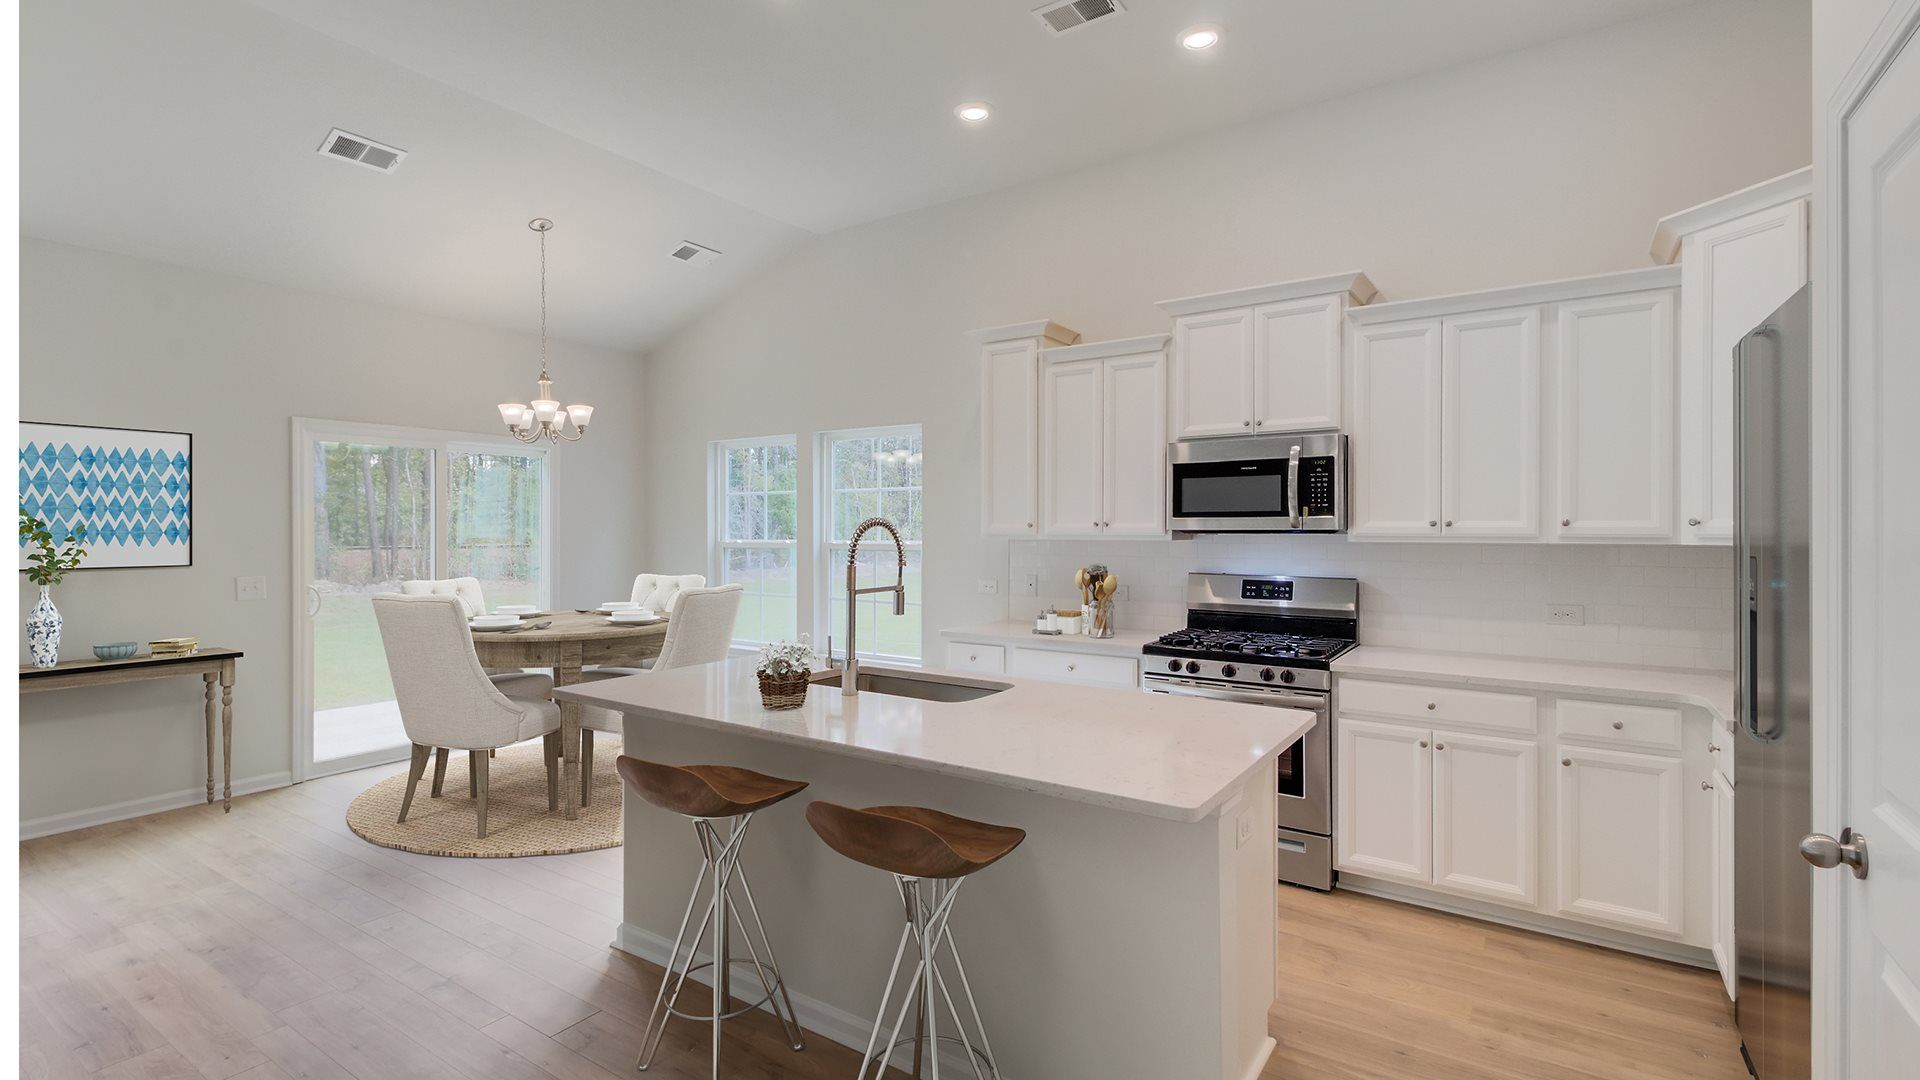 Kitchen featured in the BELHAVEN II By Lennar in Myrtle Beach, SC